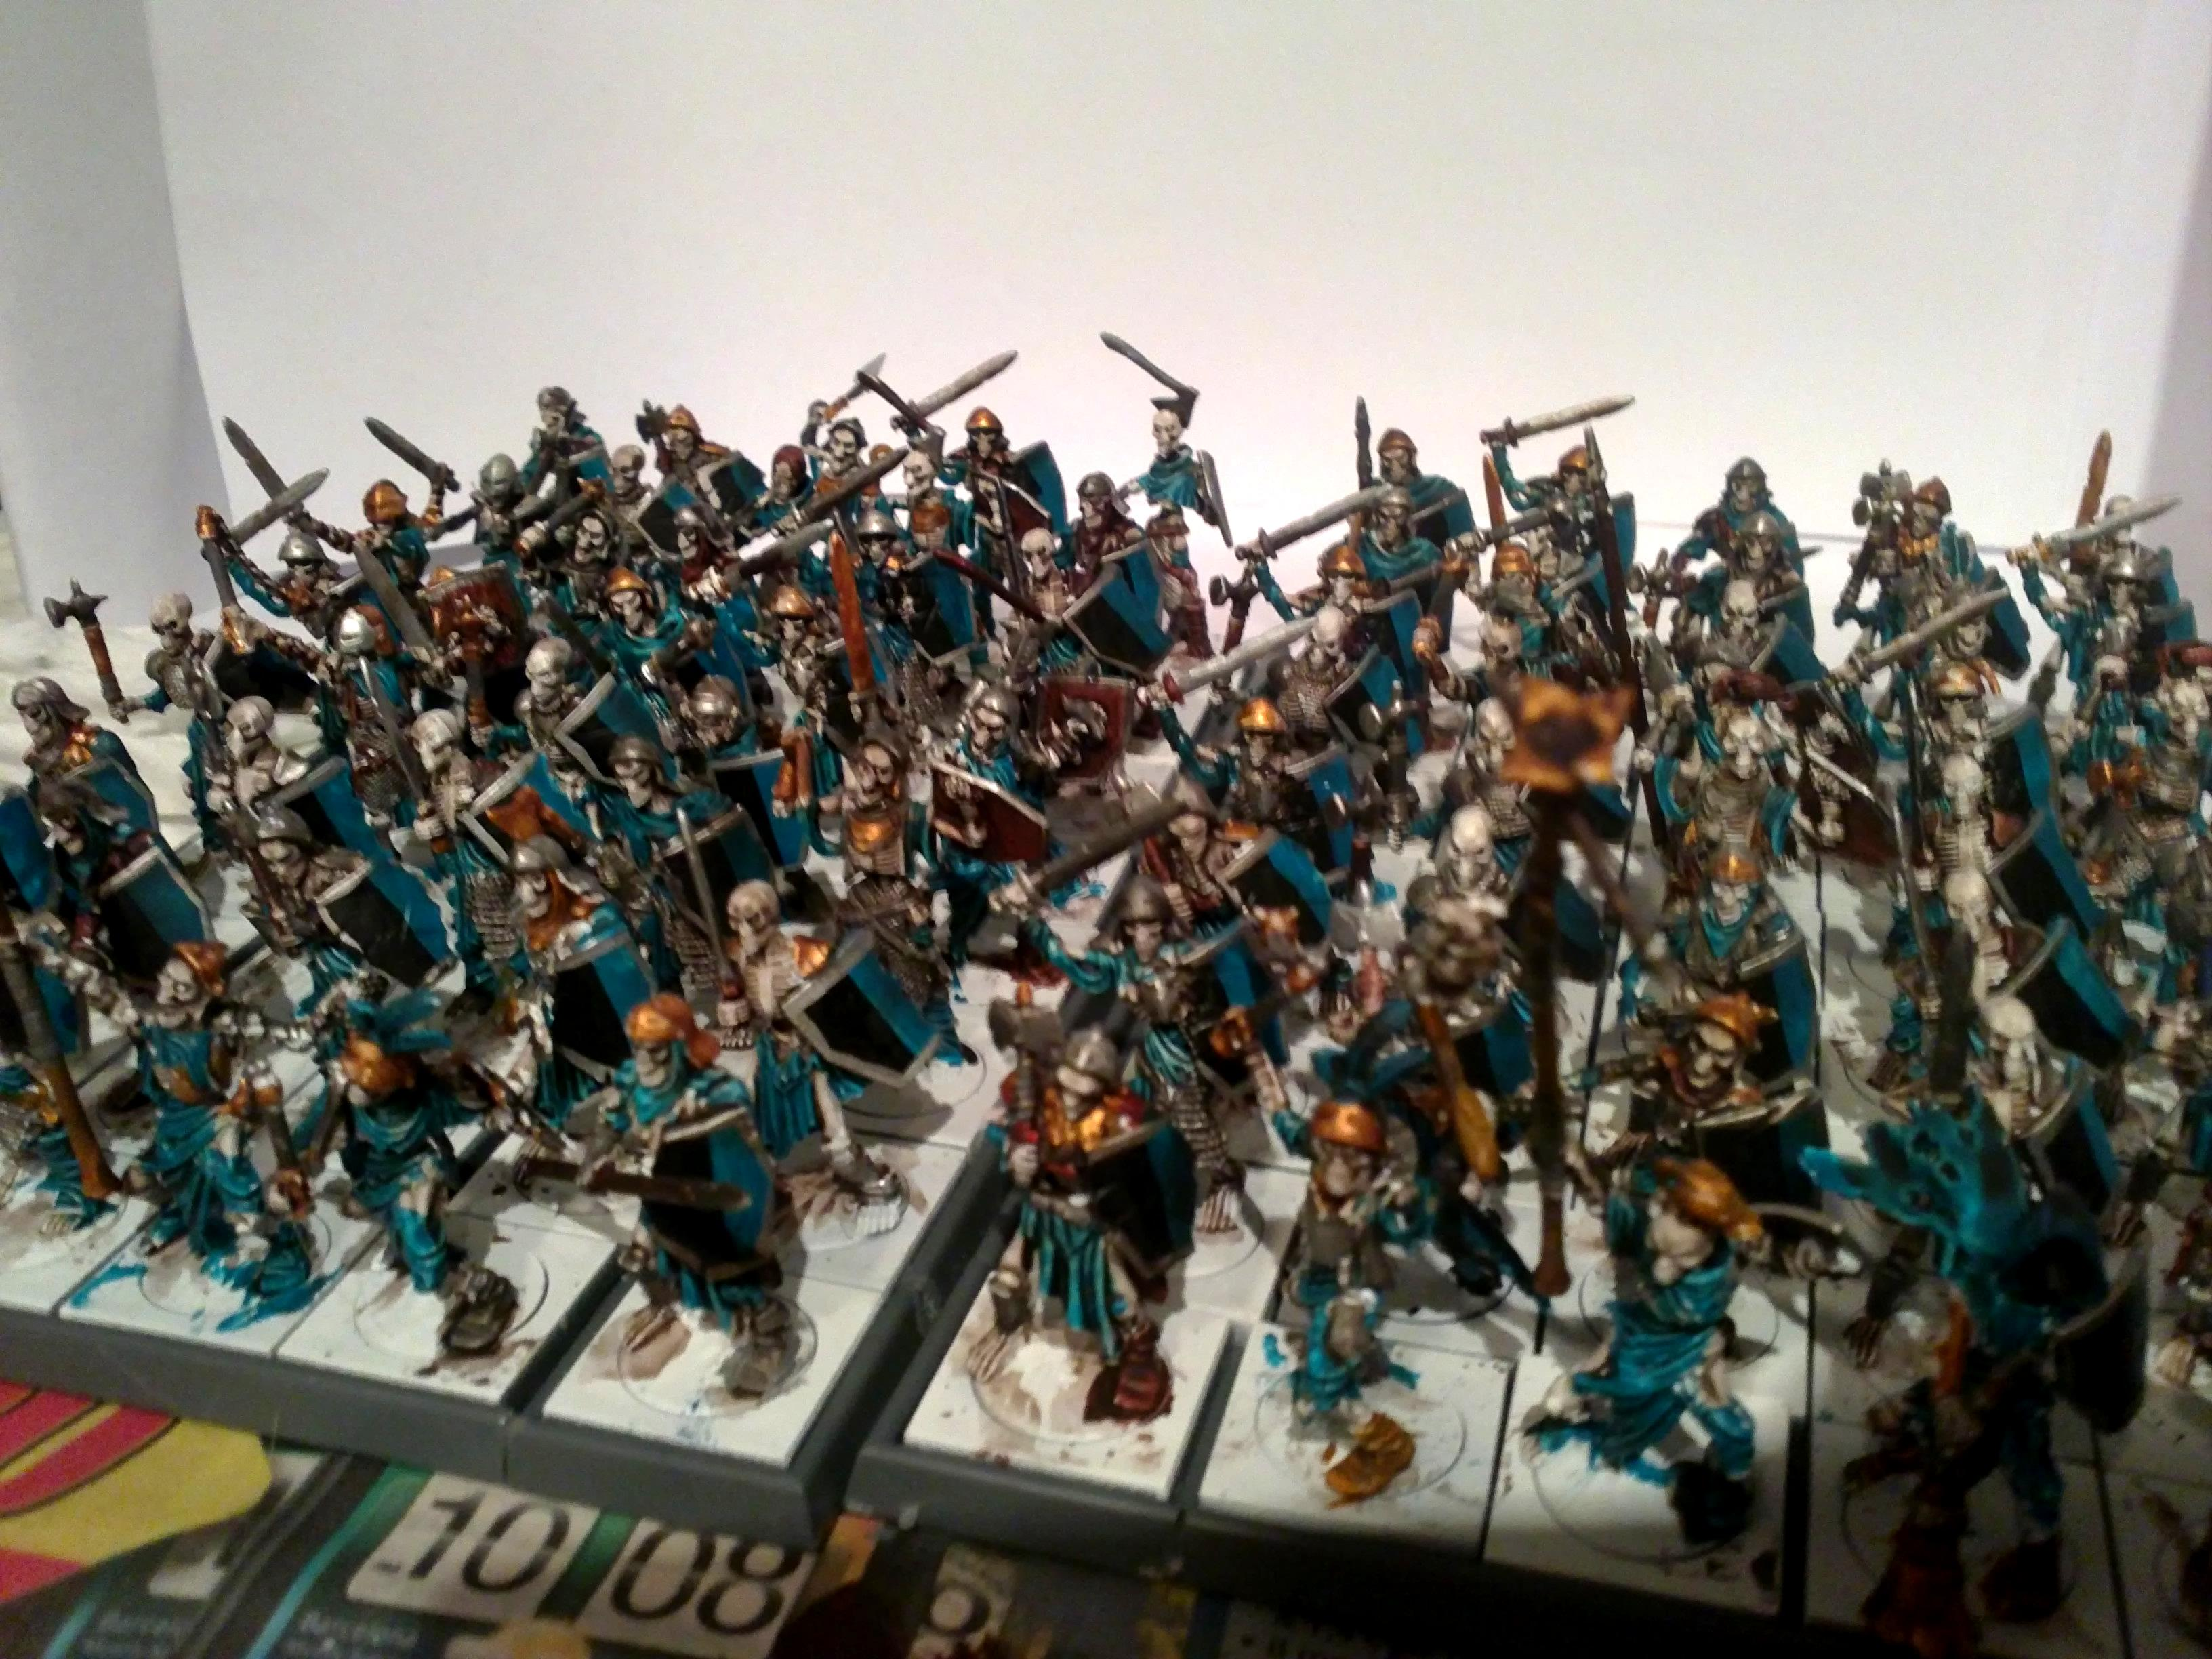 Horde, Mantic Games, Painted, Skeletons